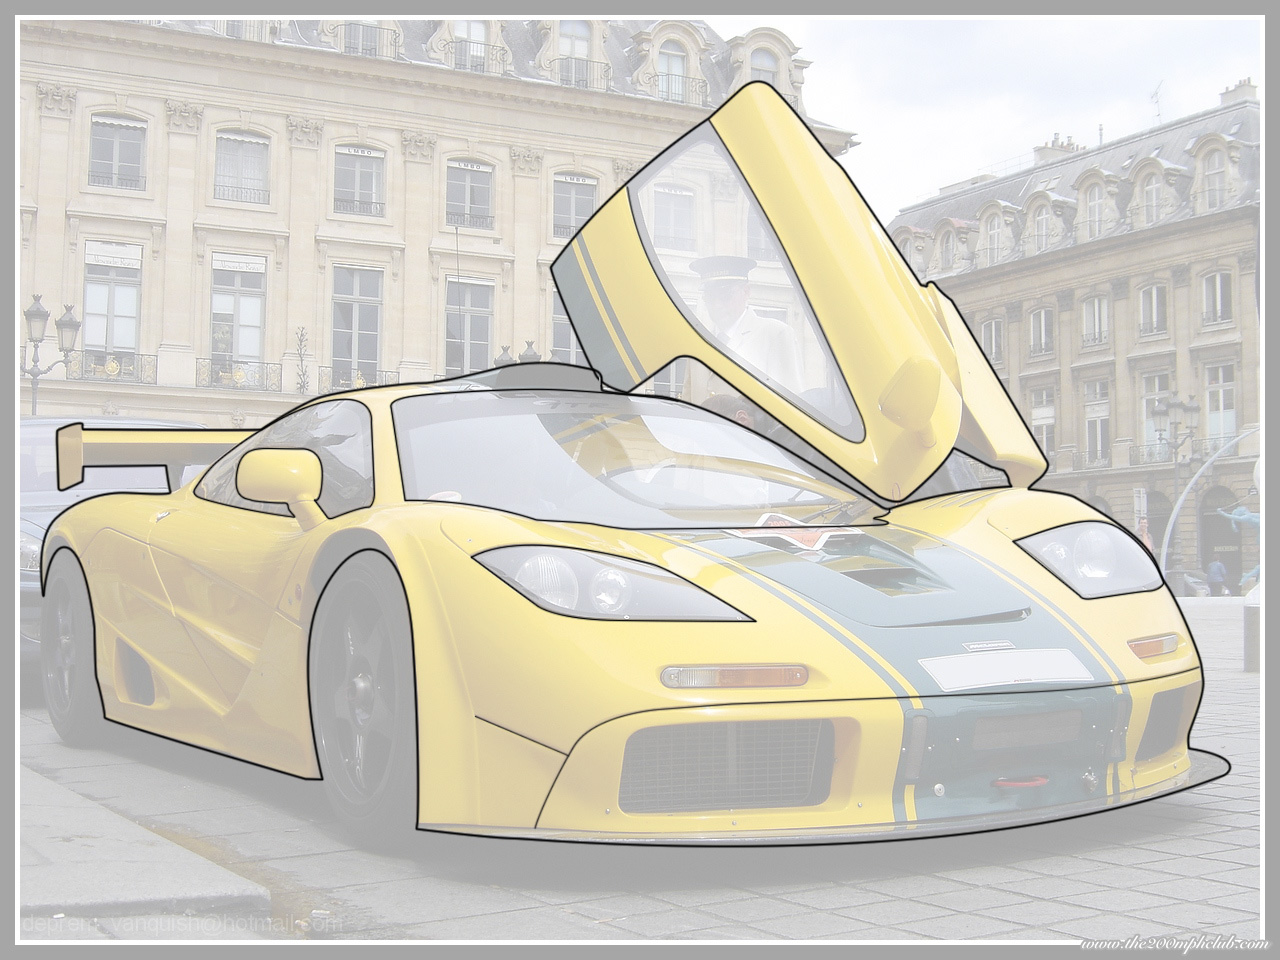 Cool Drawings to Trace a Car